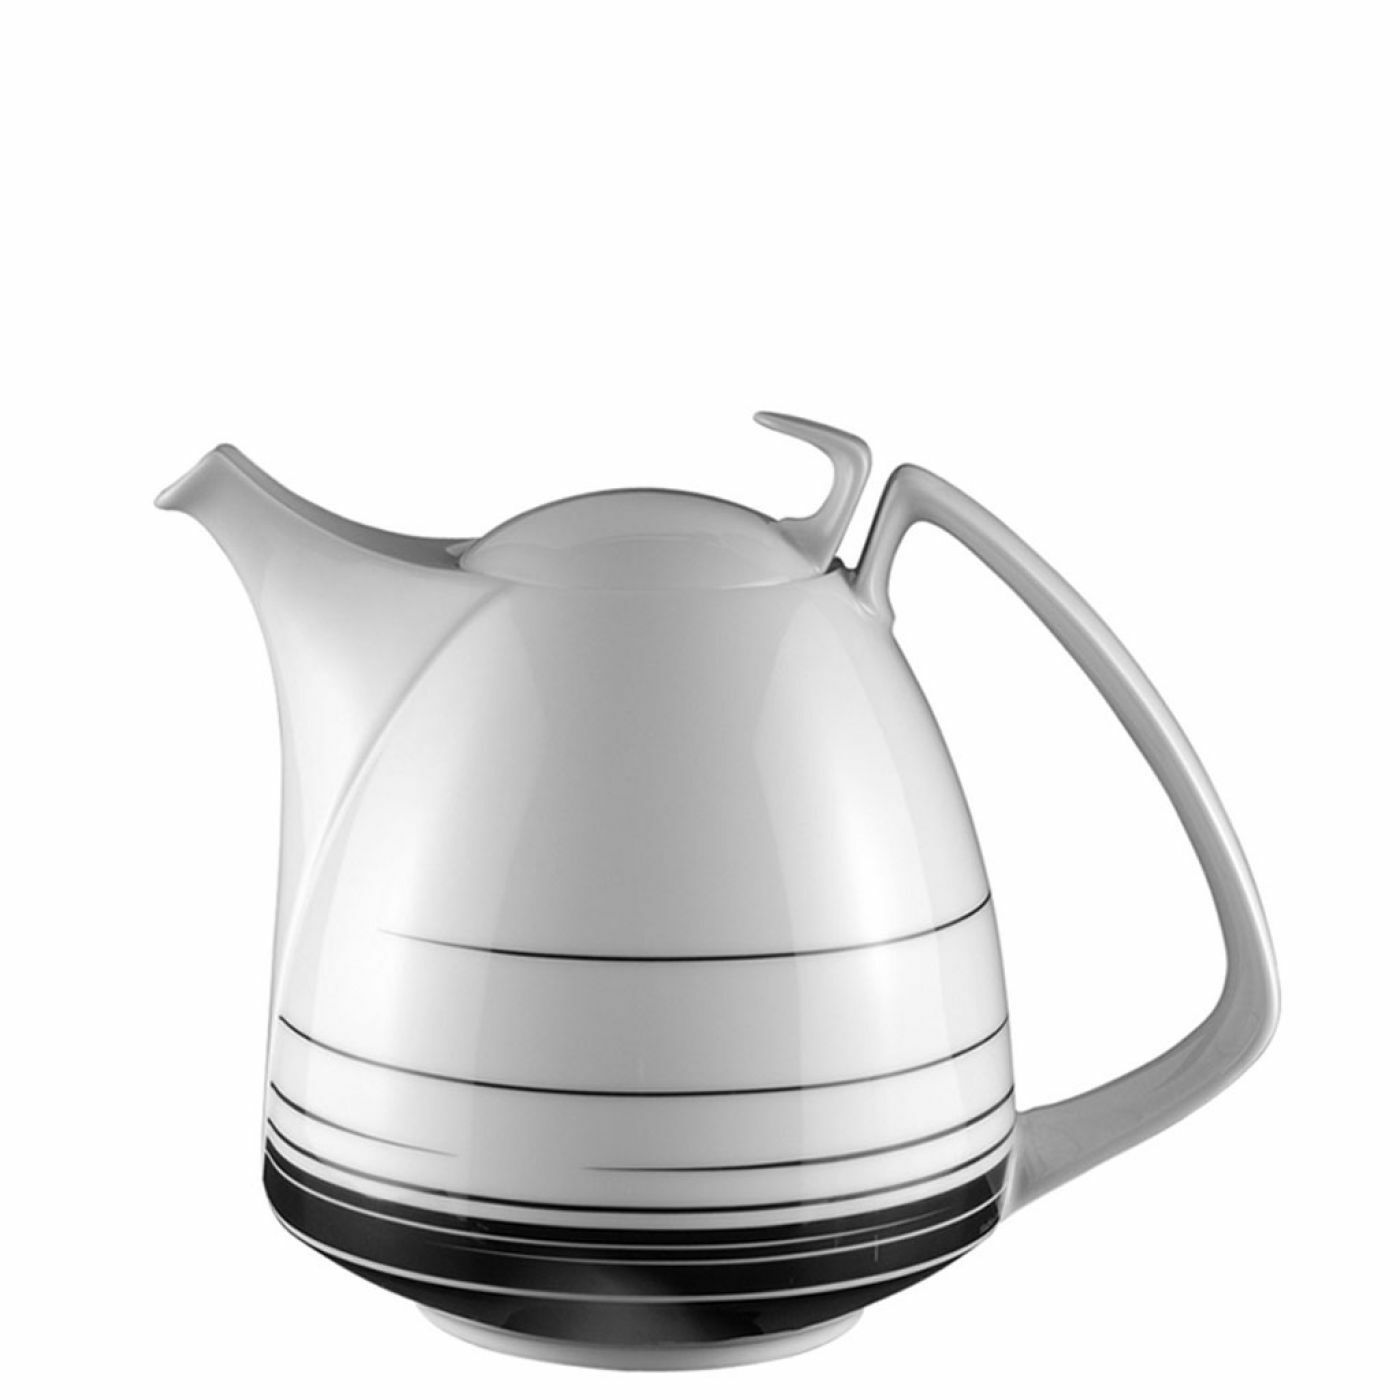 Rosenthal-Cafetière 6 personnes-TAC Gropius Dynamic-Neuf